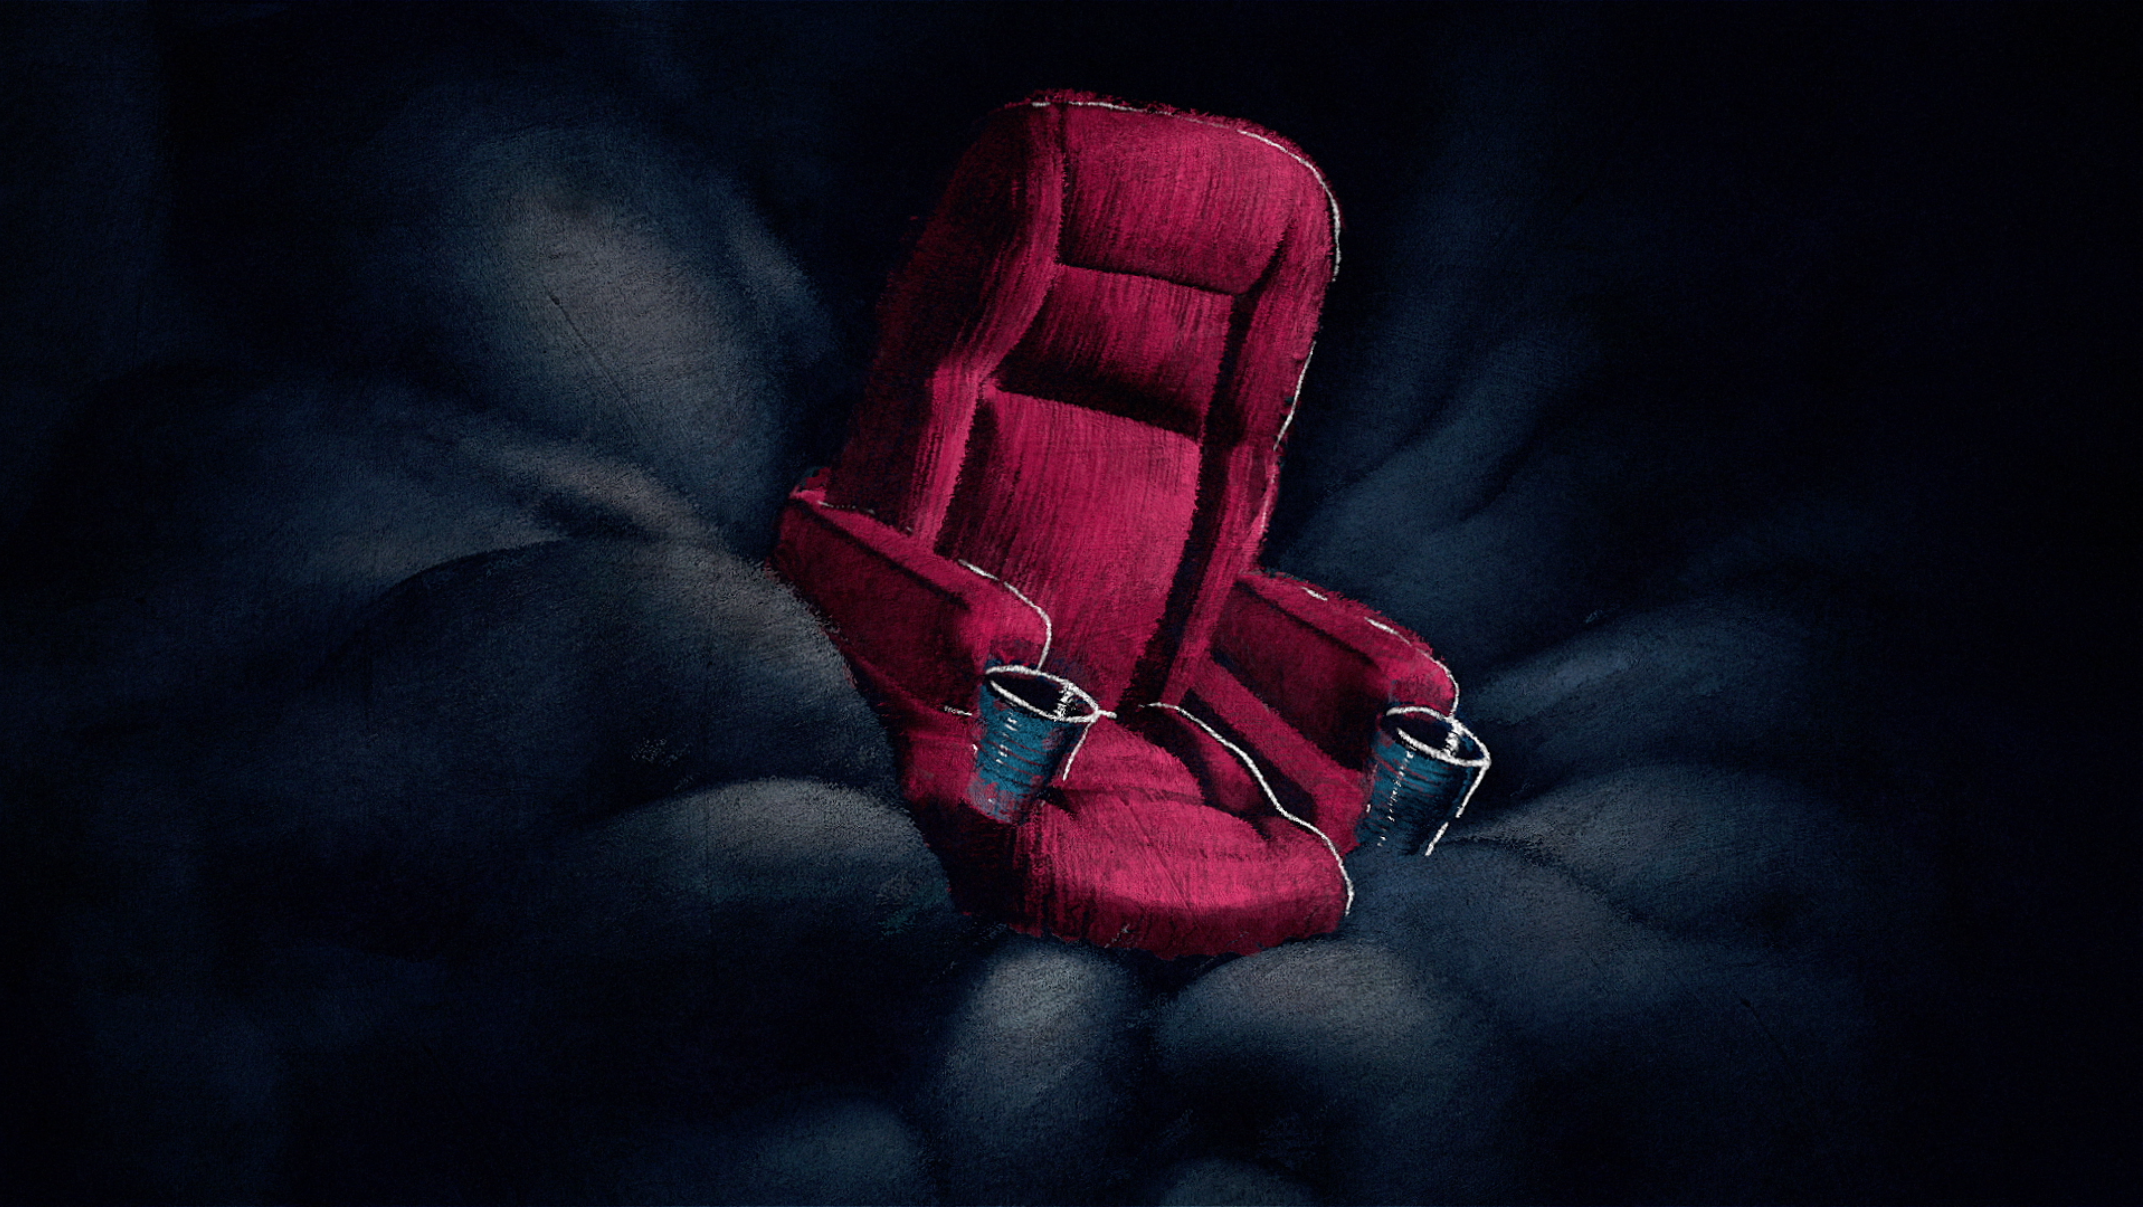 red cinema seat animation from beeld for telecine.png